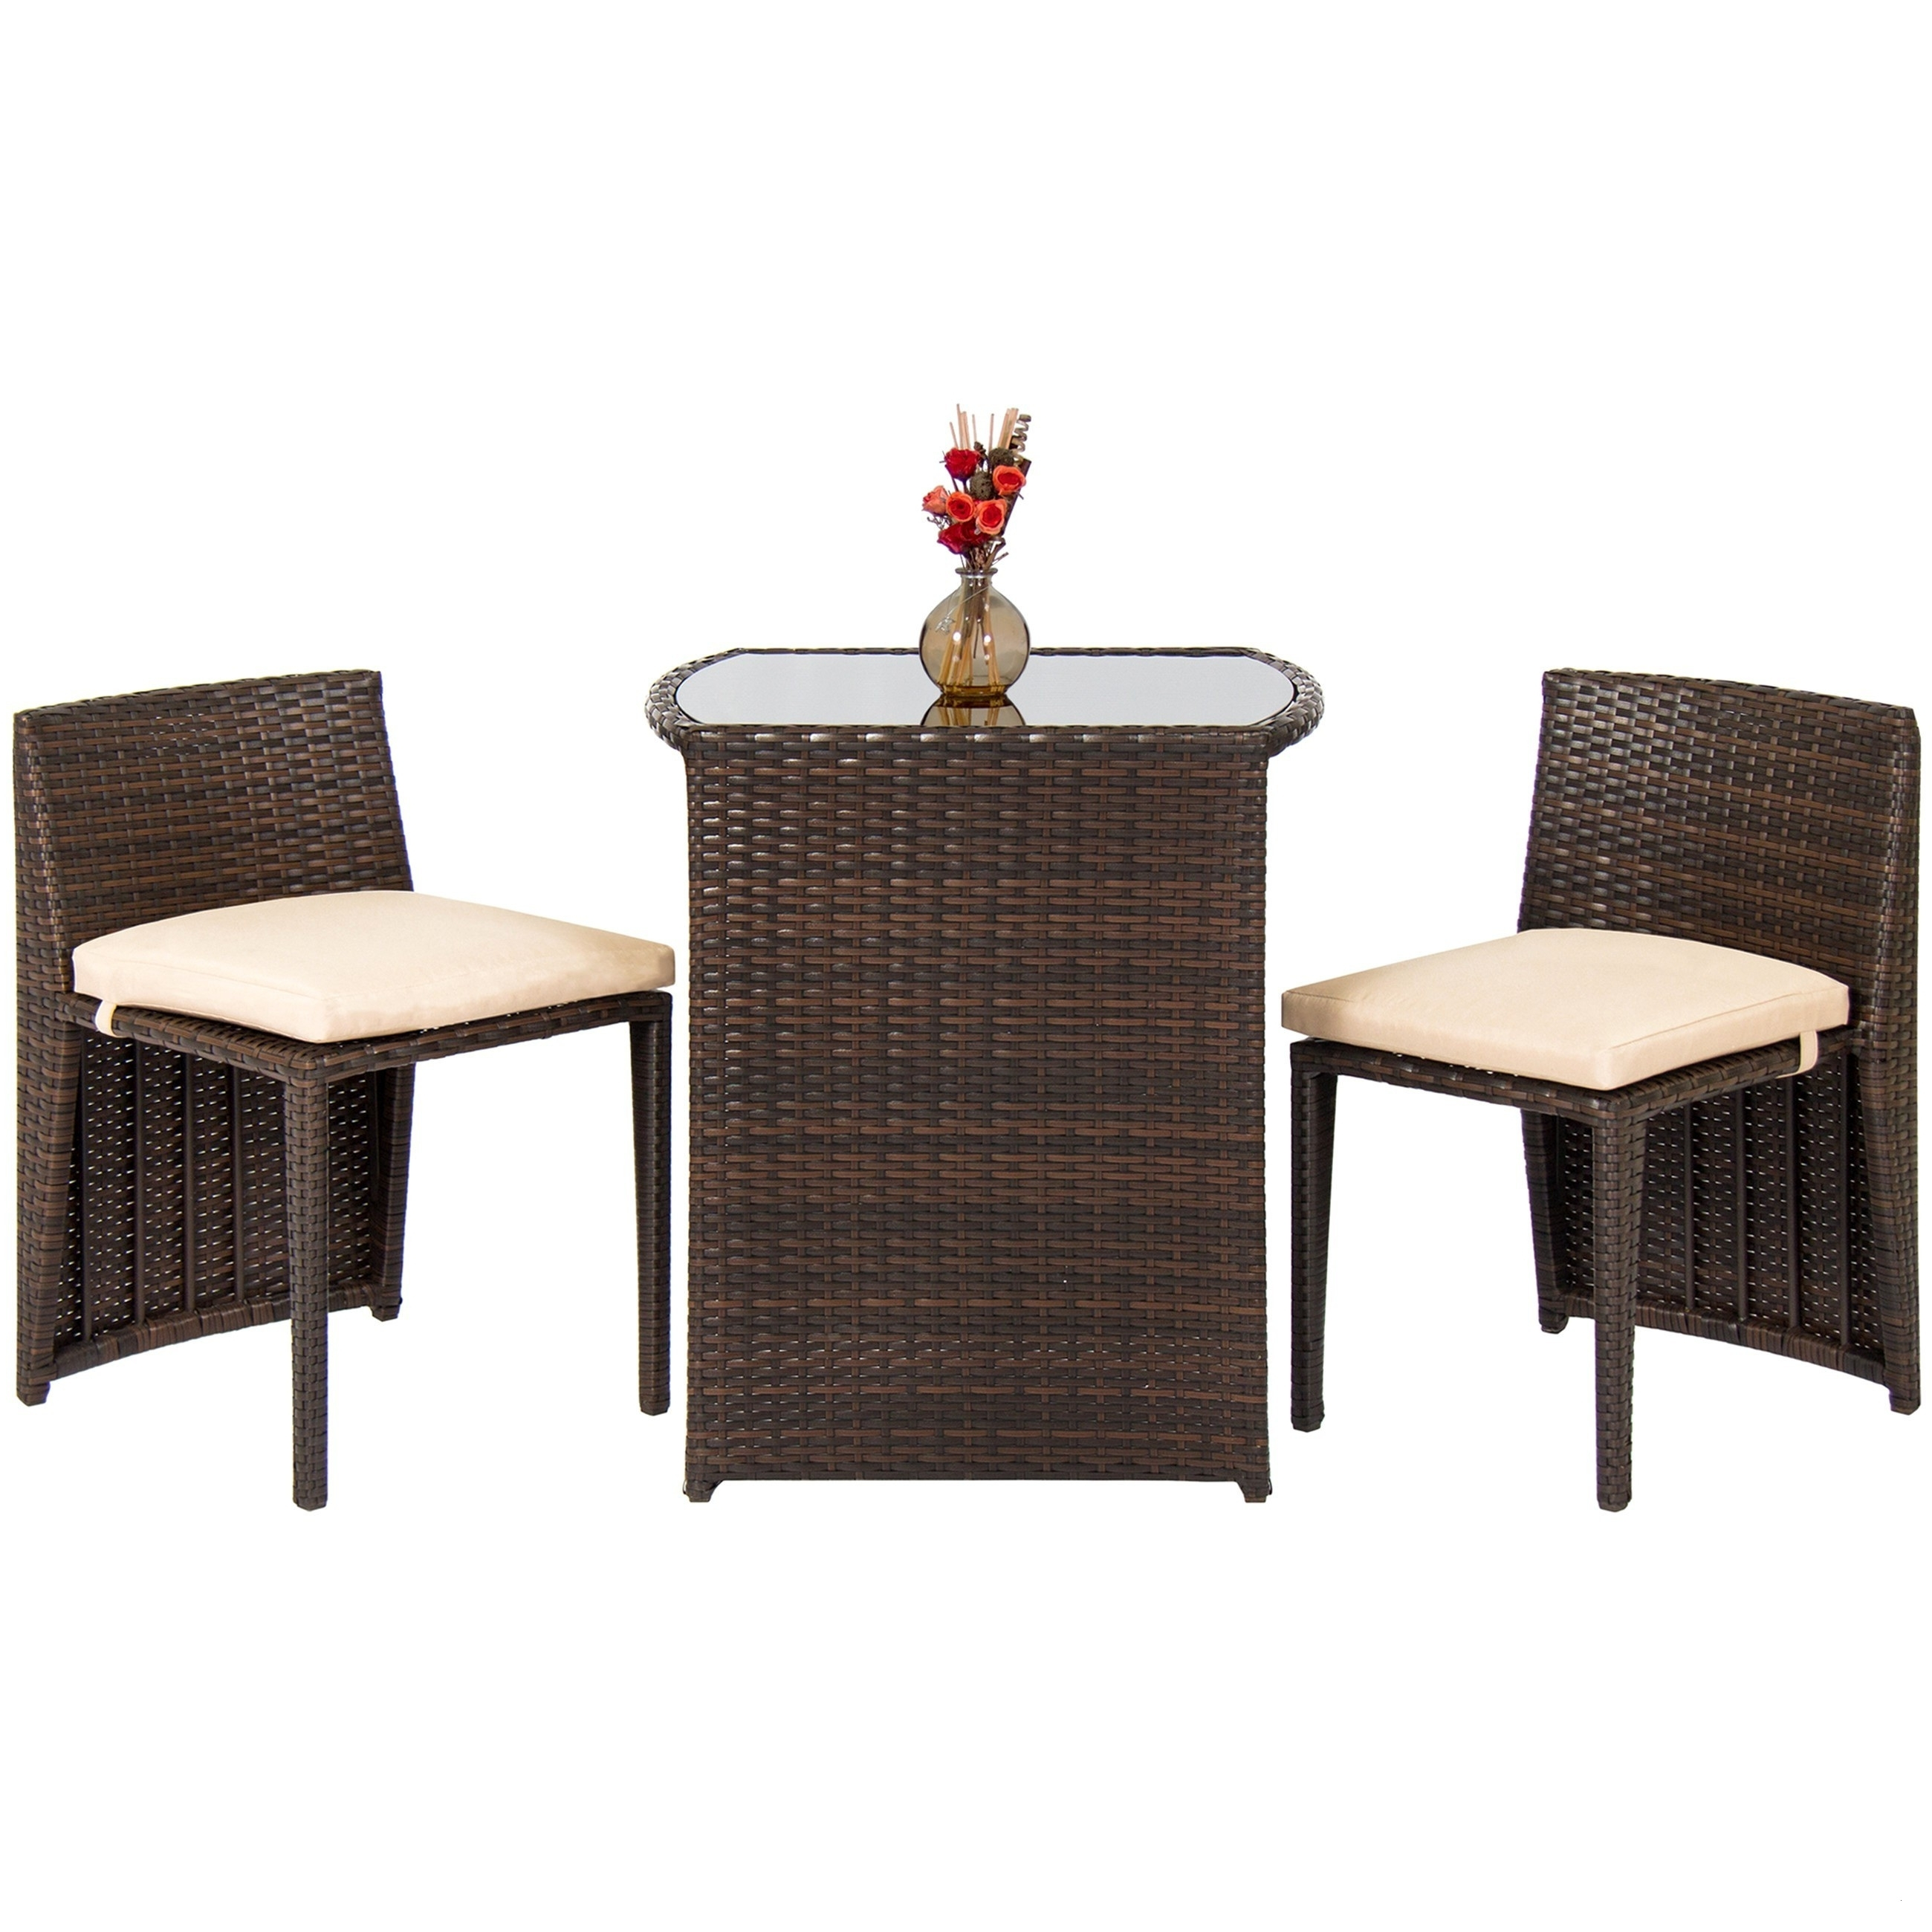 Well Known Kroger Outdoor Furniture Awesome Kroger Patio Furniture 30 Fresh With Regard To Kroger Outdoor Lanterns (View 2 of 20)